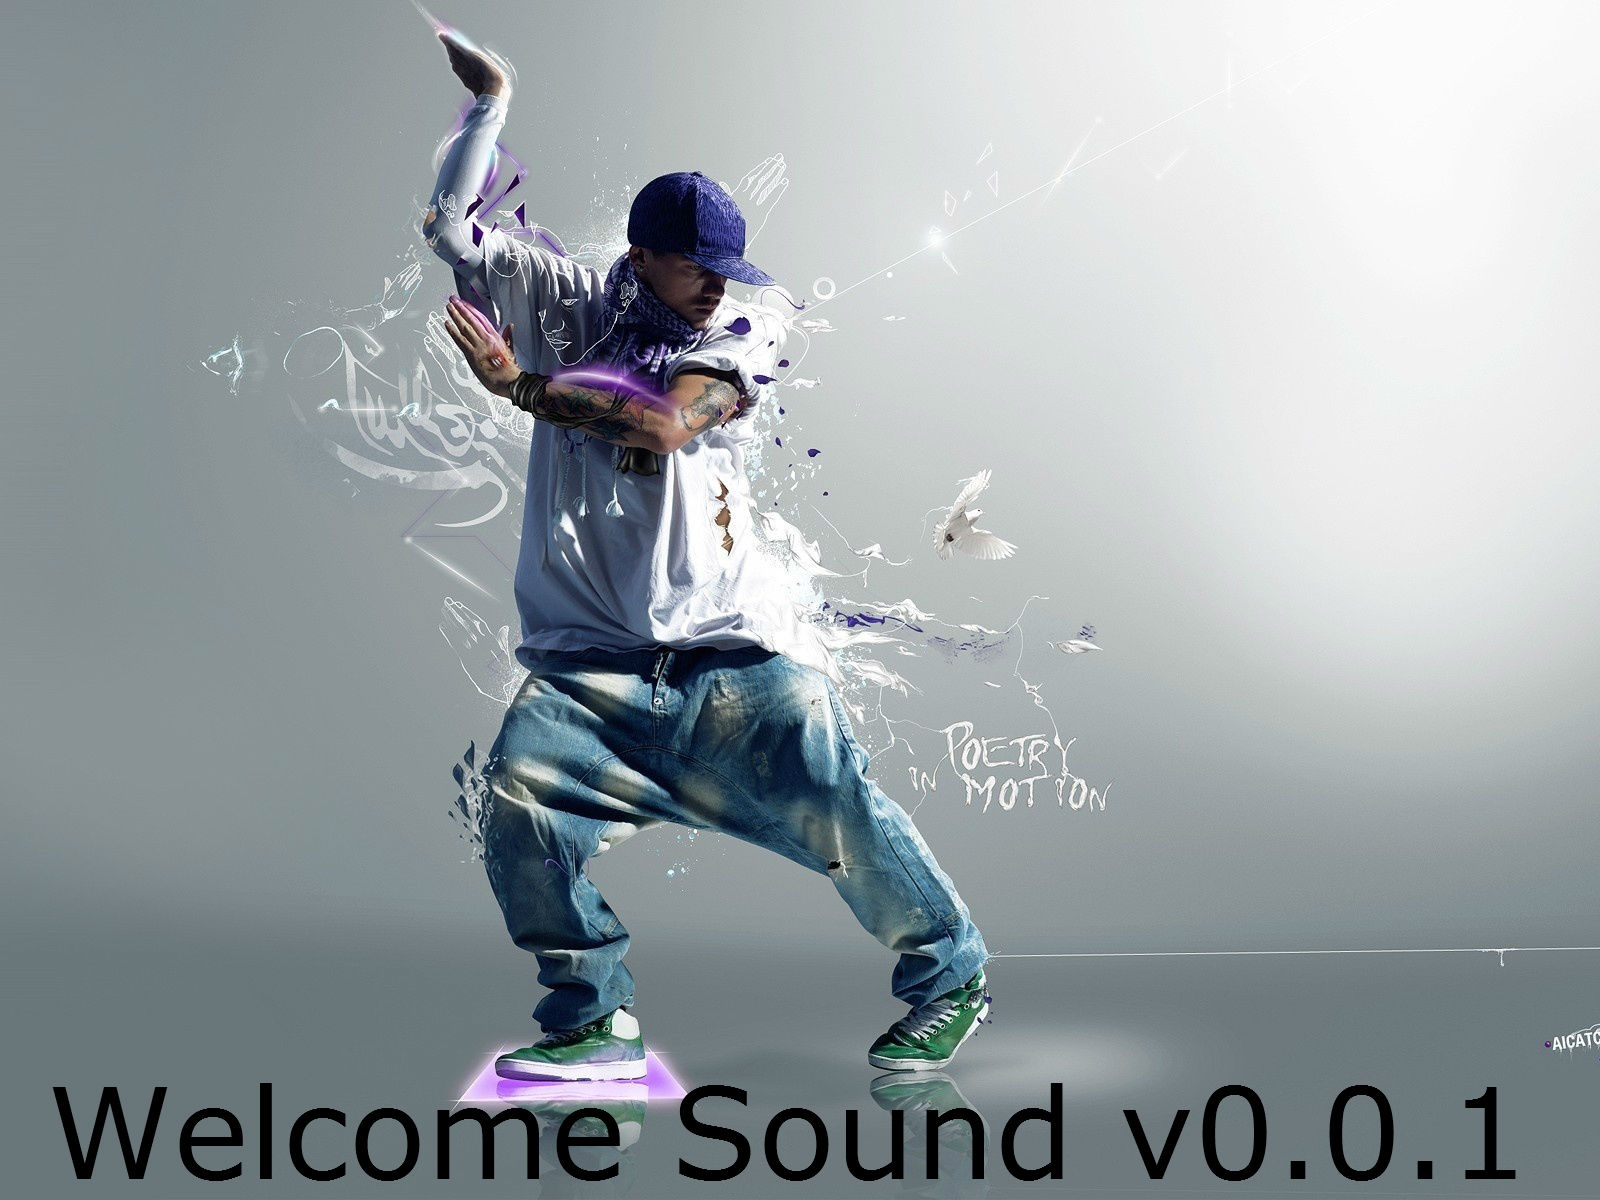 Welcome Sound v0.0.1